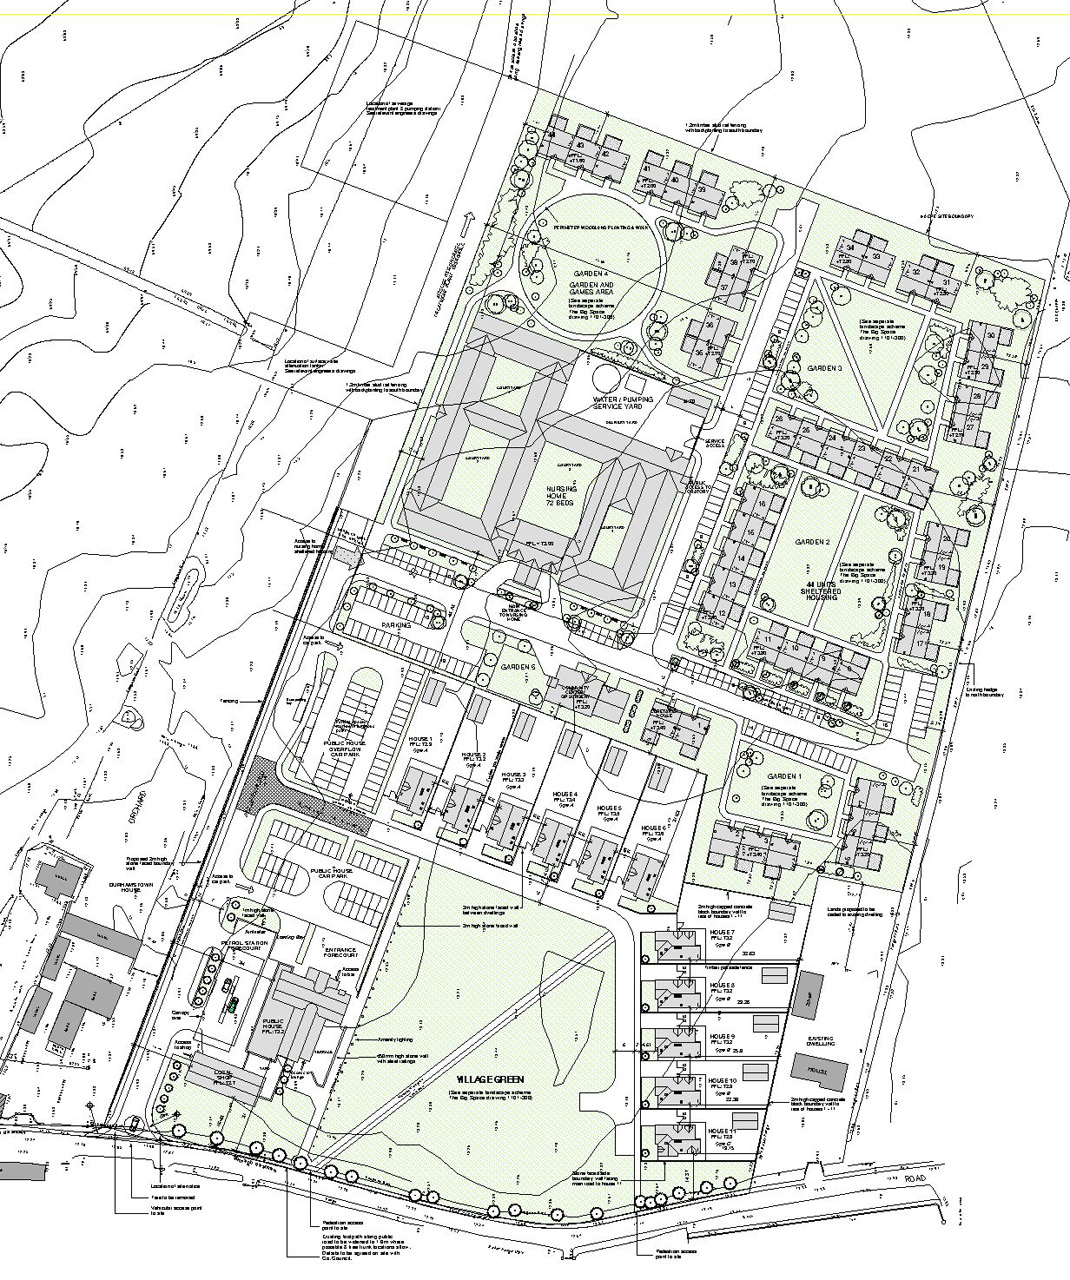 bohermeen-site-plan-WEB